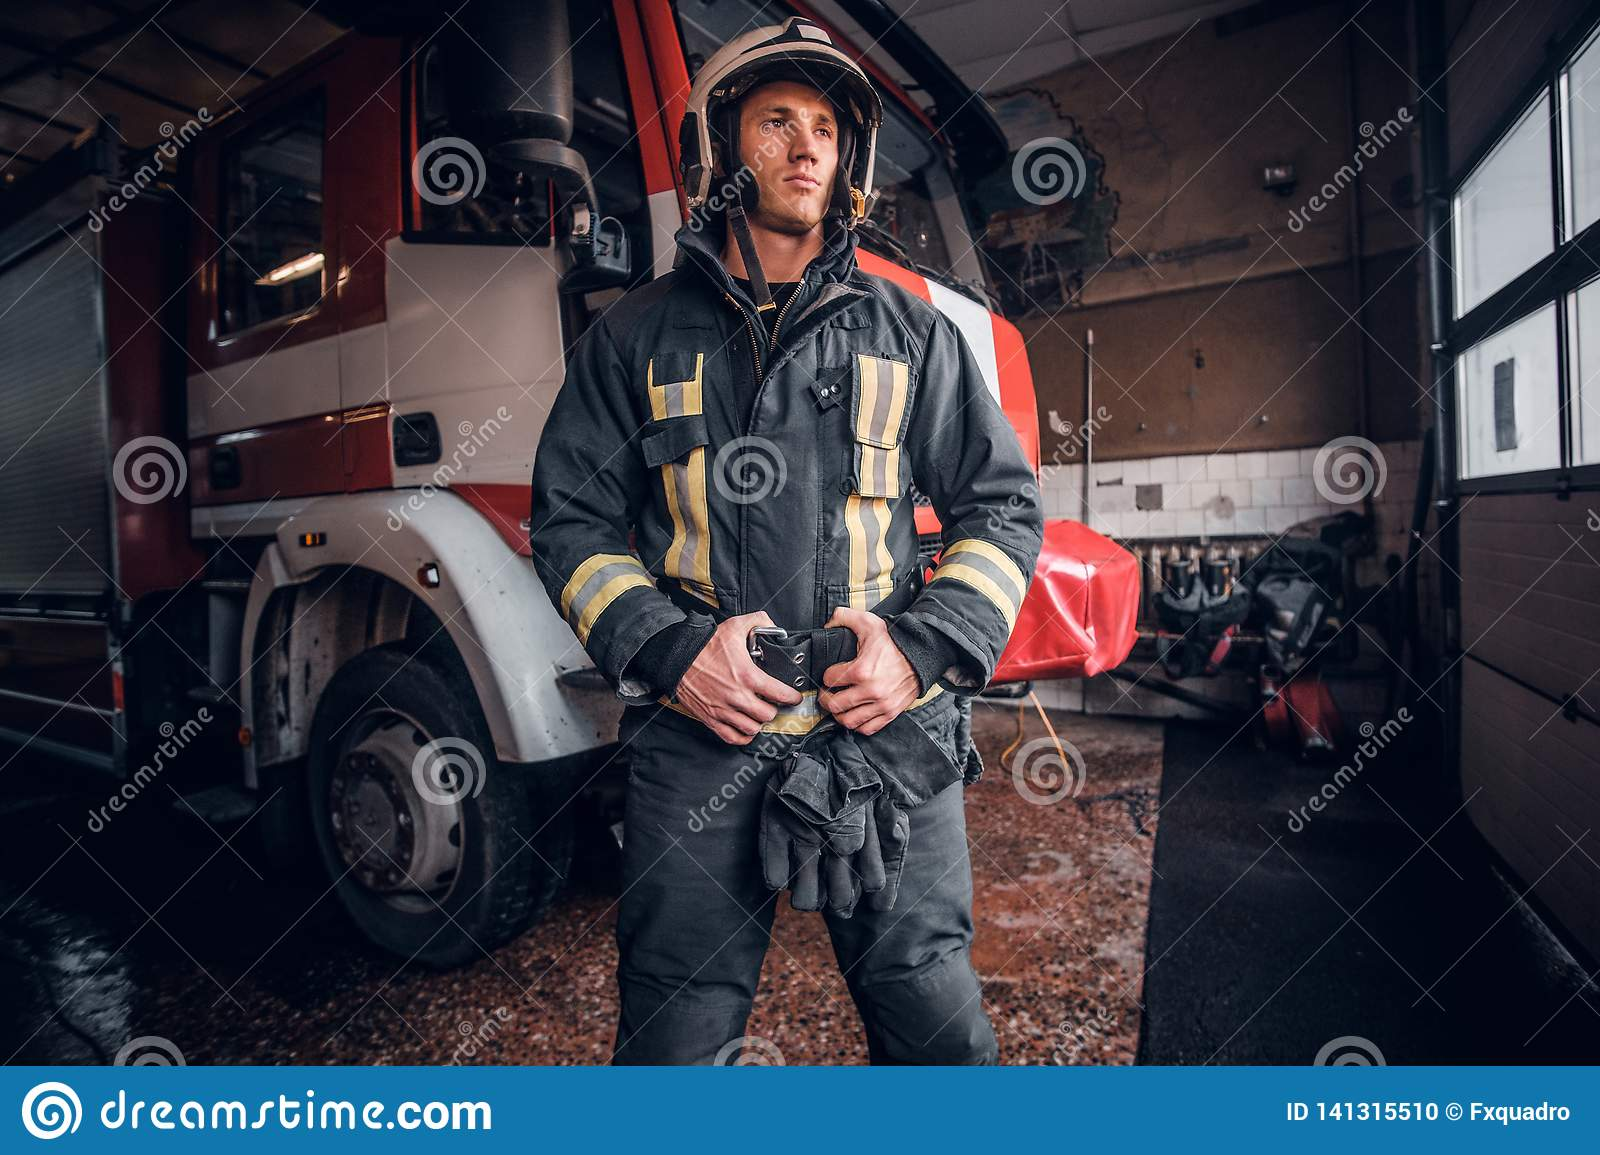 Young fireman wearing protective uniform standing next to a fire engine in a garage of a fire department